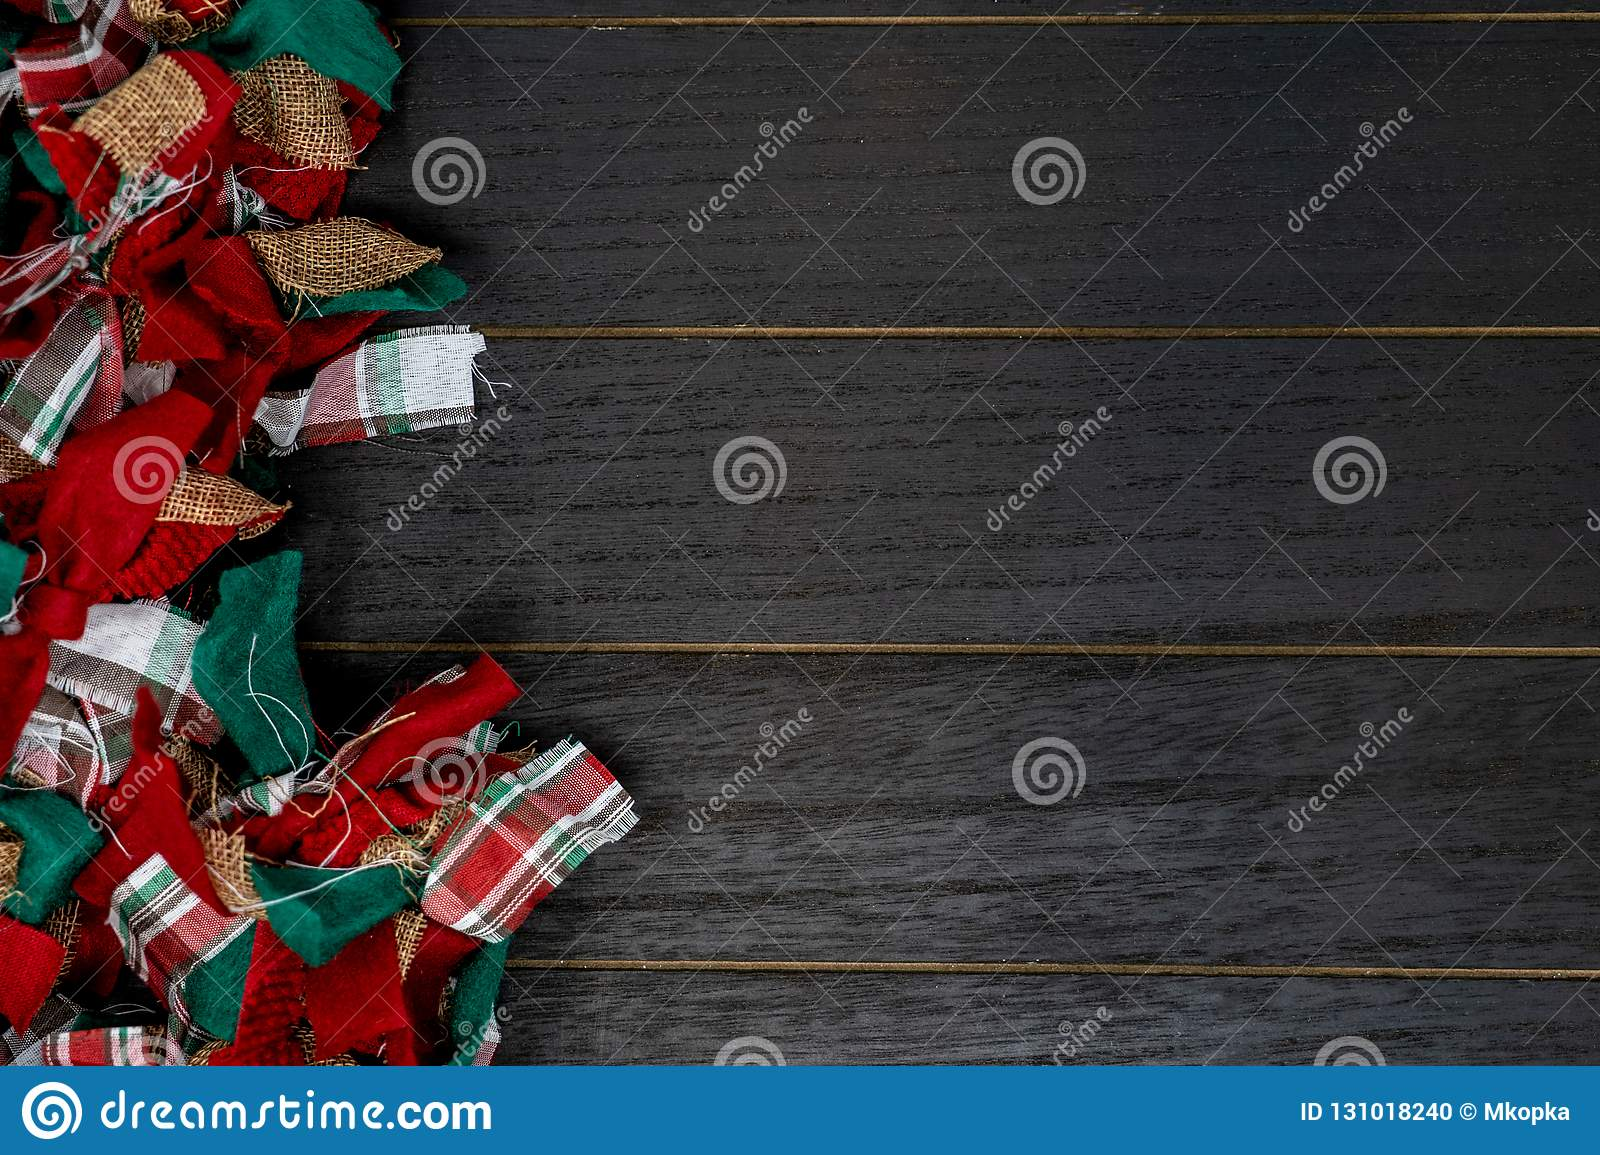 Festive Christmas Red Green And White Rag Fabric Garland Over Wood Backdrop Stock Photo Image Of Christmas Design 131018240